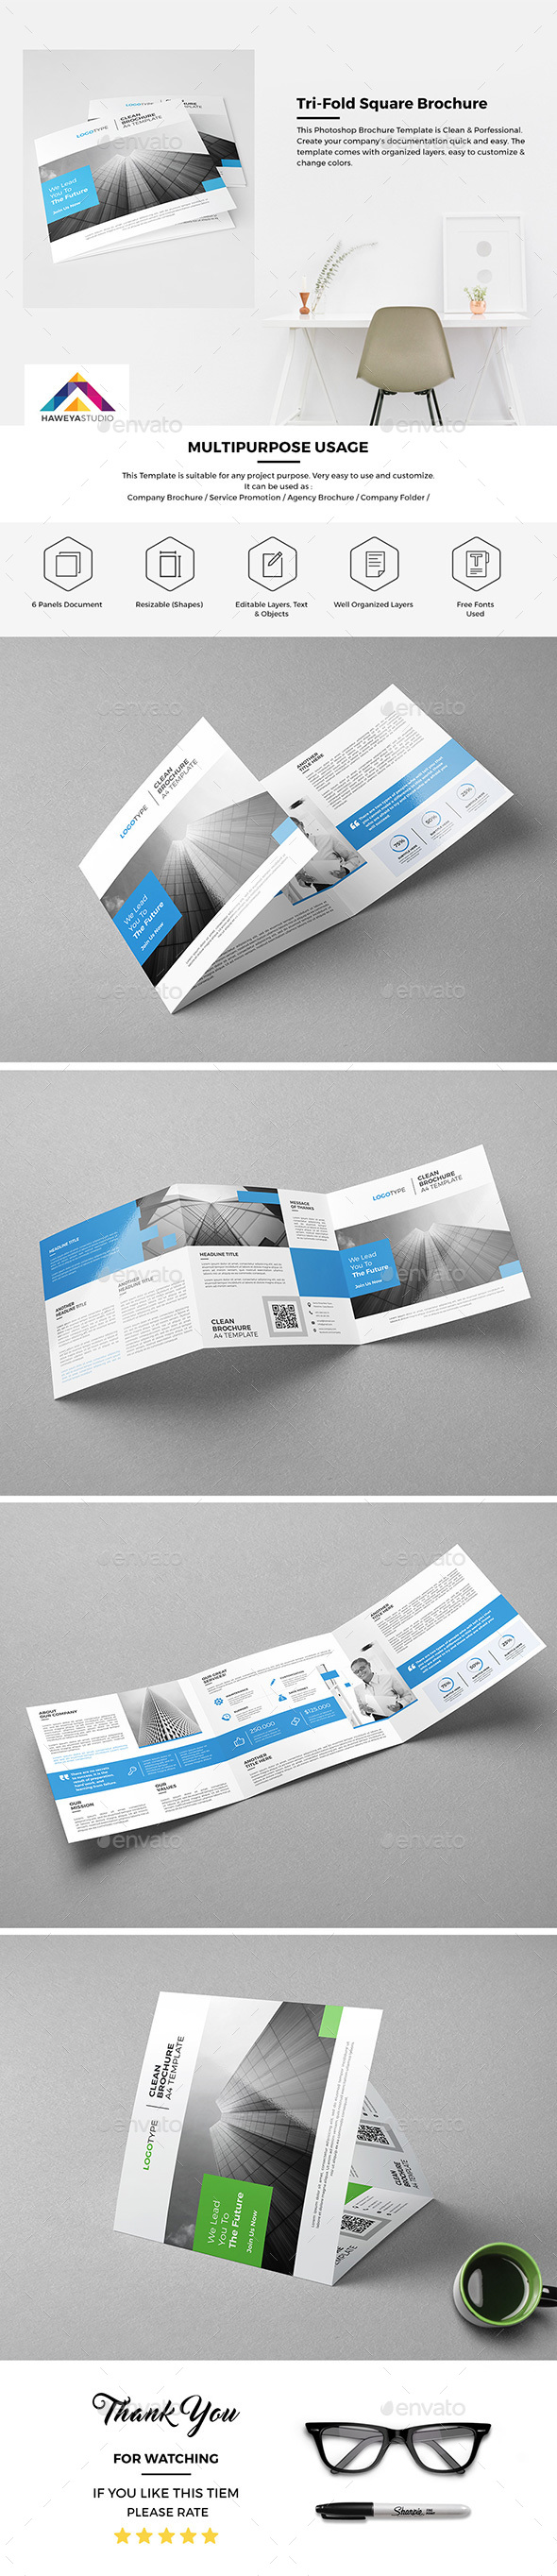 Tri-Fold Square Brochure 01 - Corporate Brochures